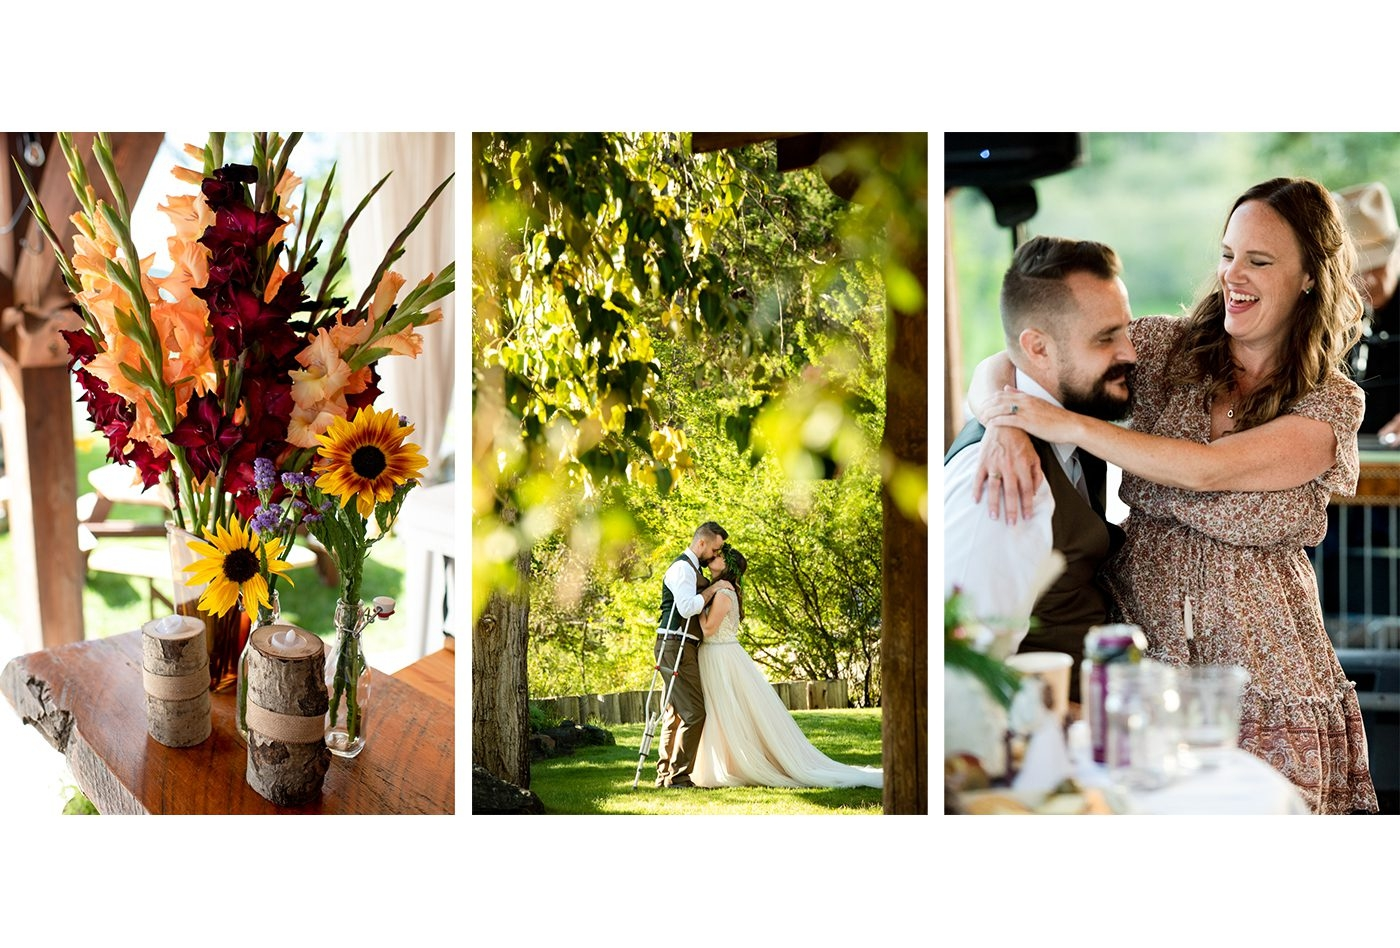 The-Nest-on-Swan-River-Wedding-Day-bride-groom-portraits